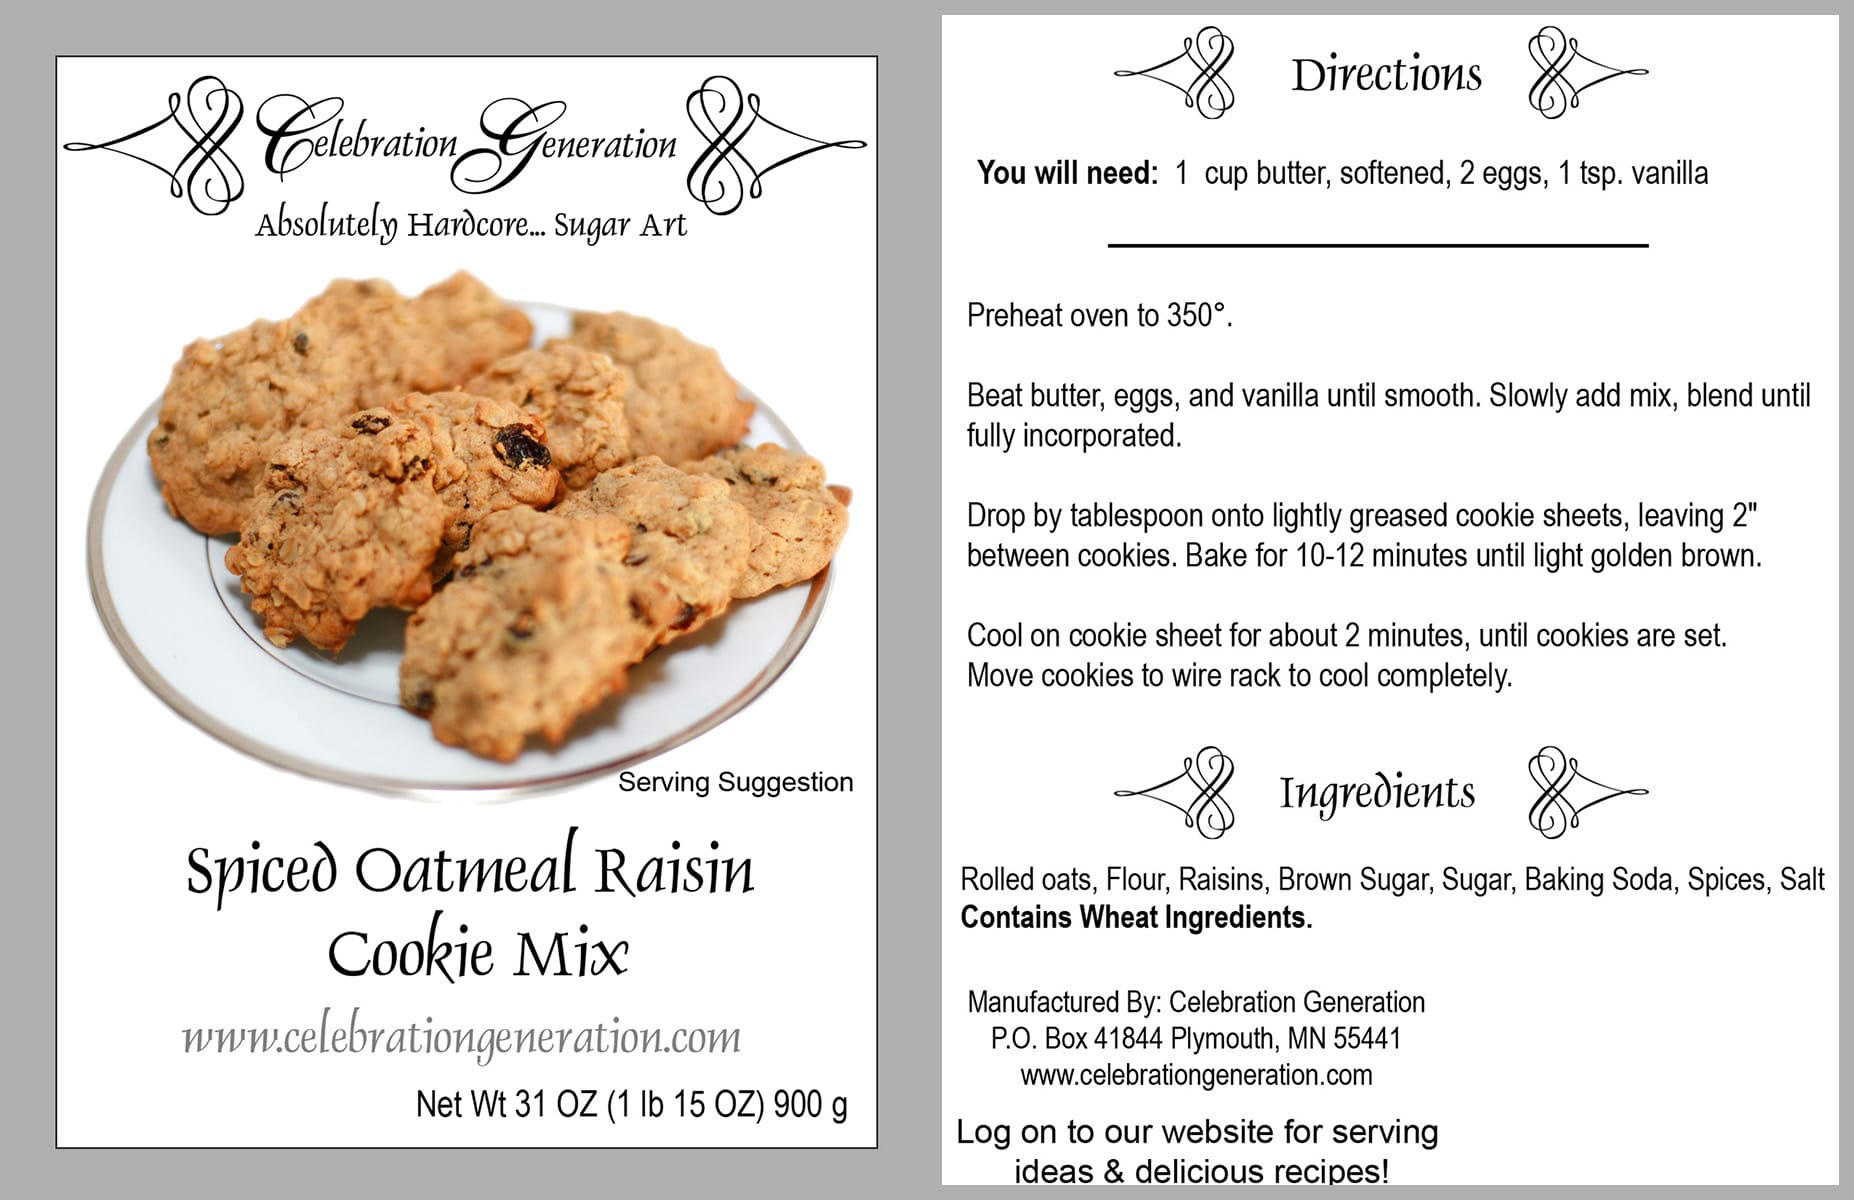 Front and back images of labels from a bag of spiced oatmeal raisin cookie mix.